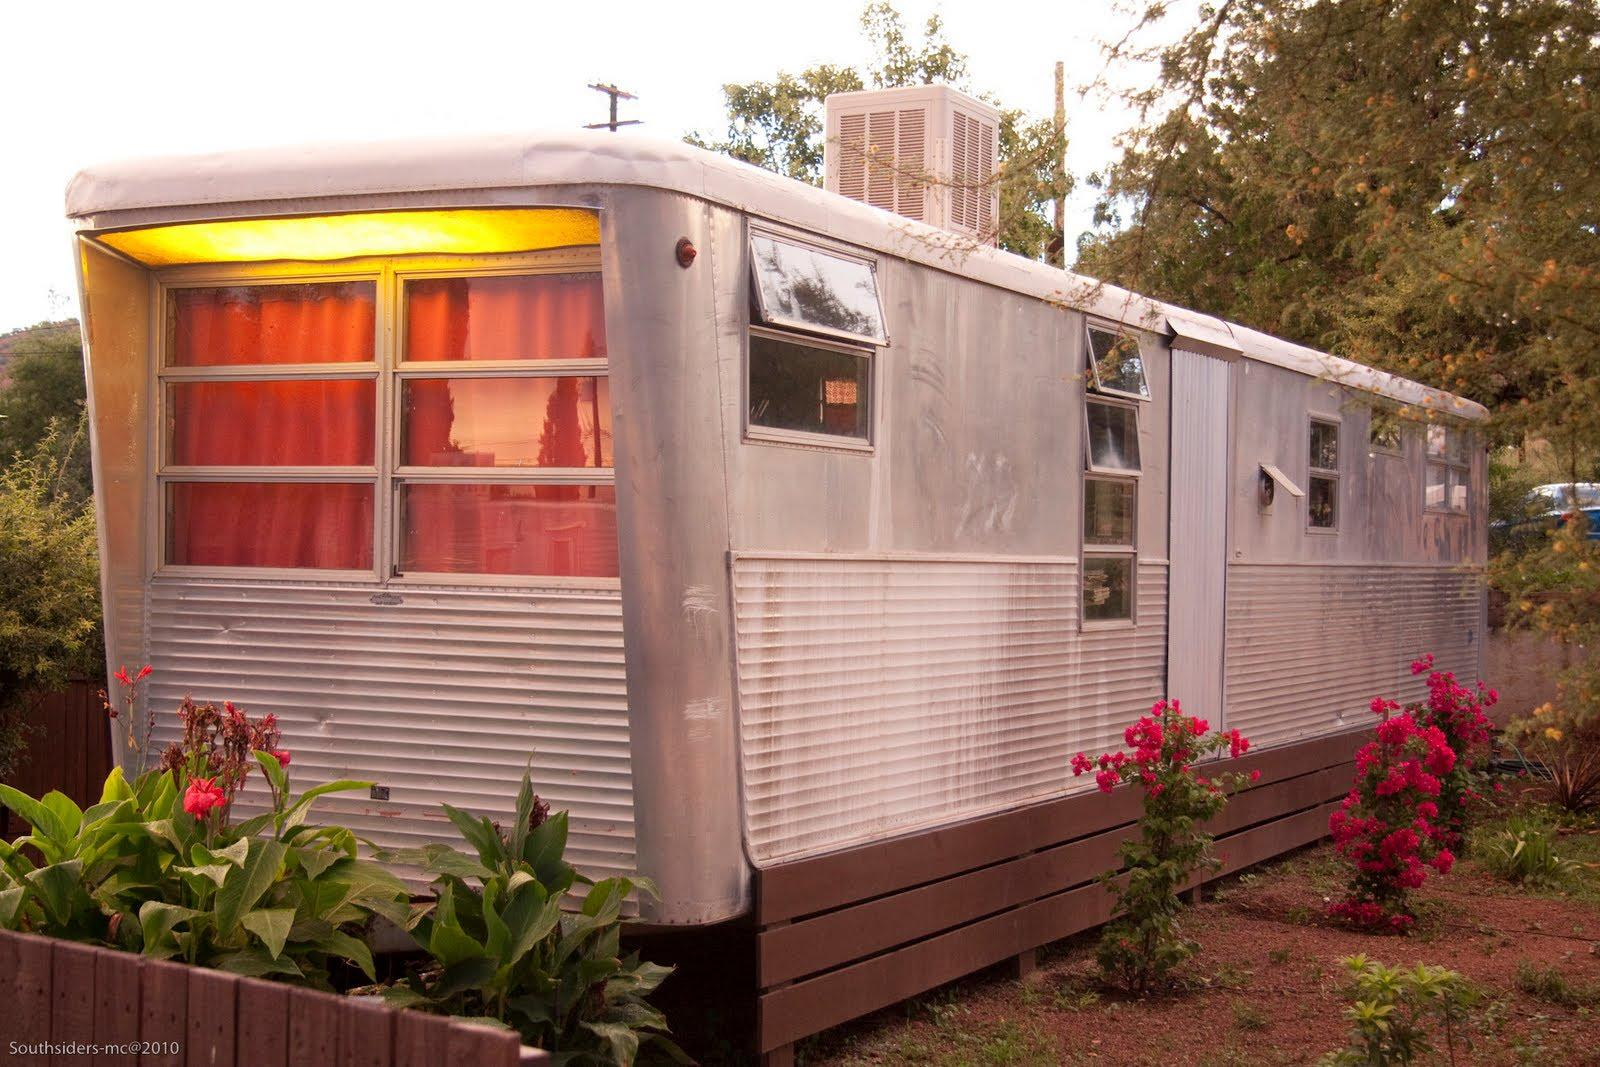 Blogspot Shady Dell Vintage Trailers Camp Html